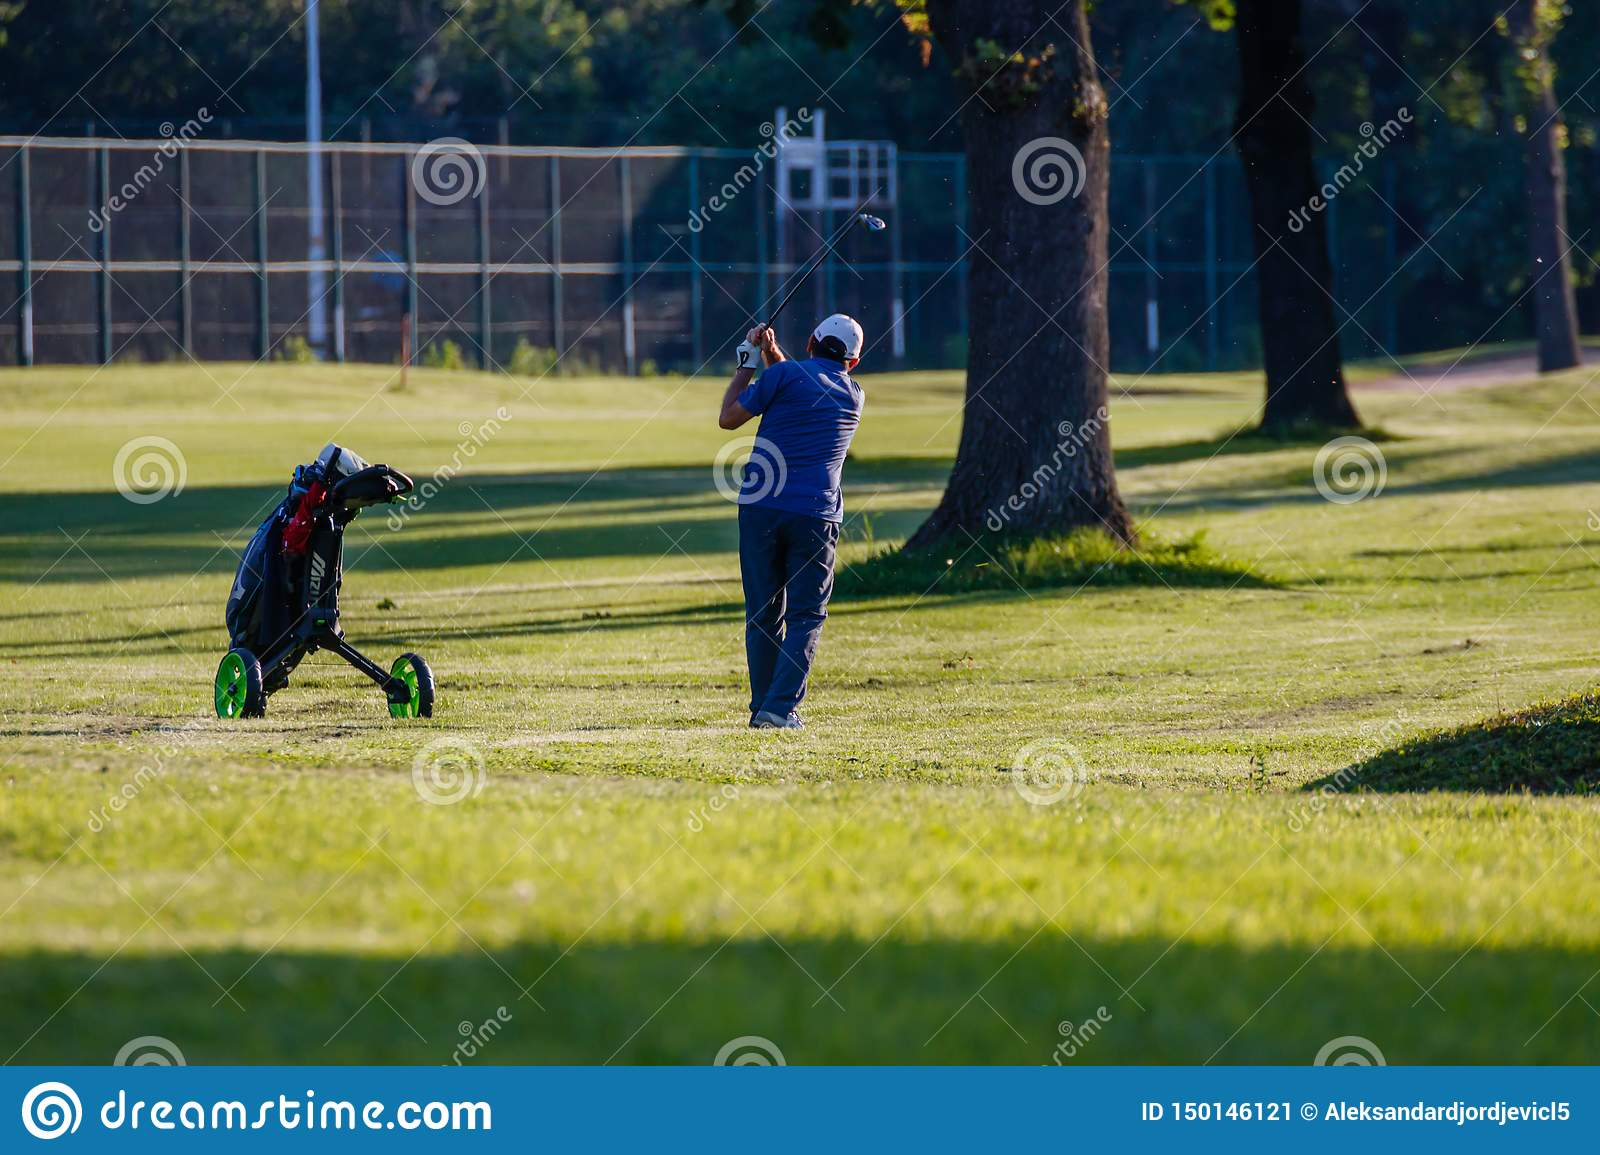 Belgrade, Serbia- June 1, 2019: Senior golfer at the golf course, just hit the ball